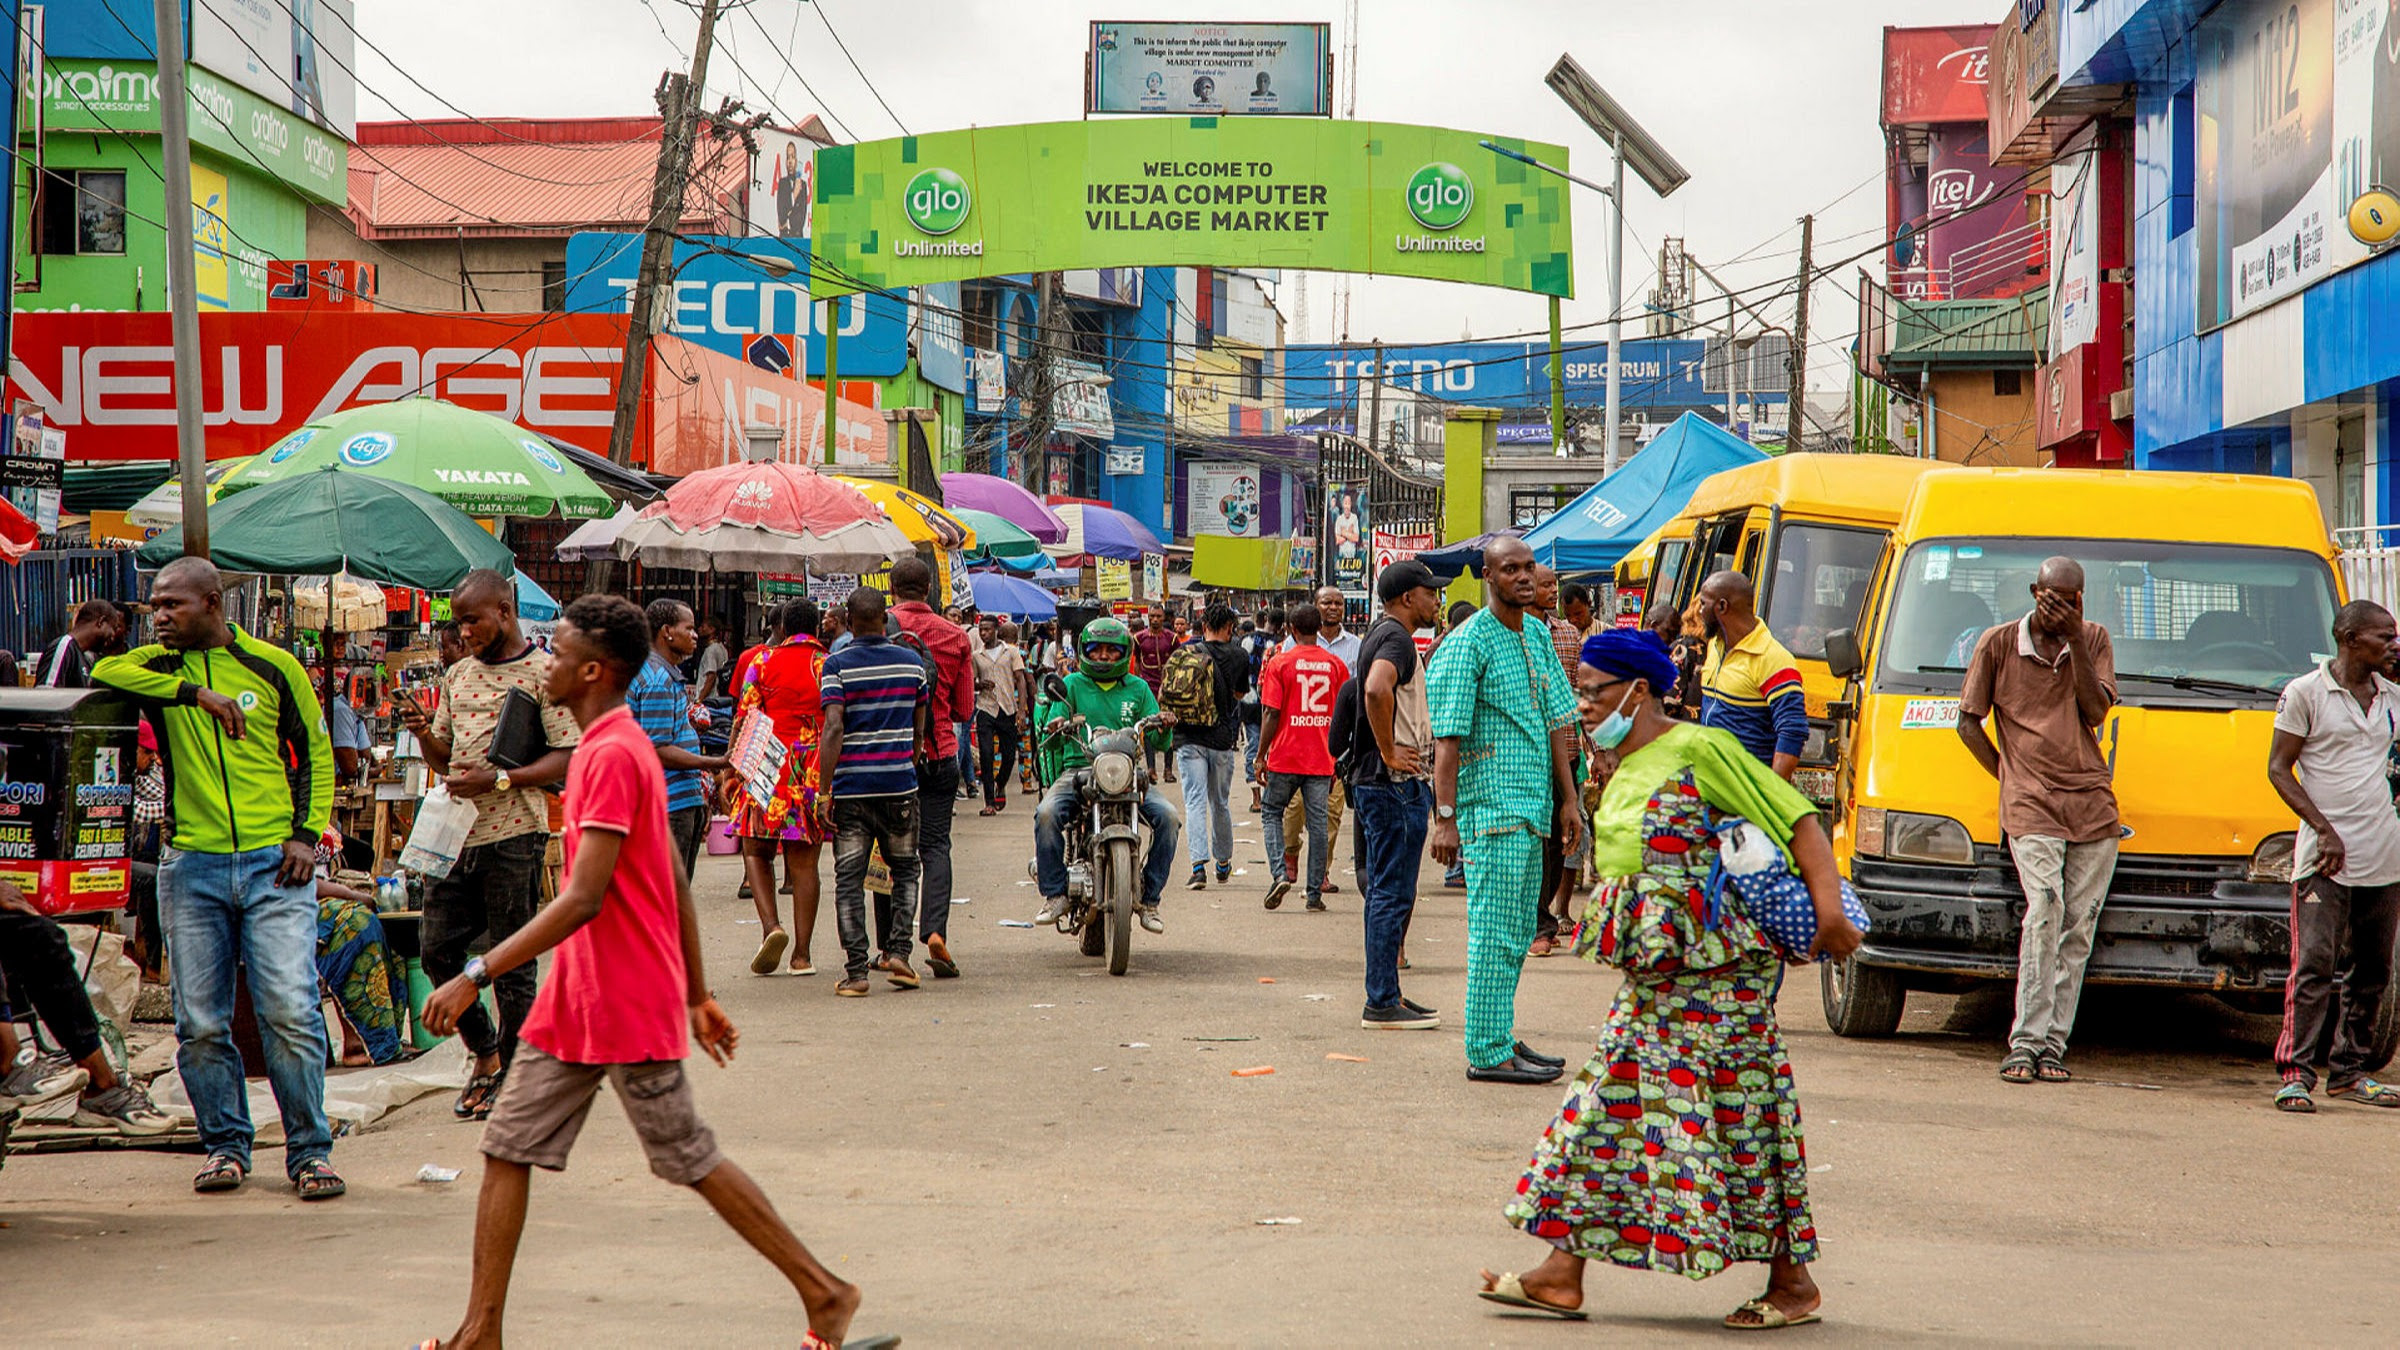 'Post-Covid' remains a mirage for many developing economies, warns UN